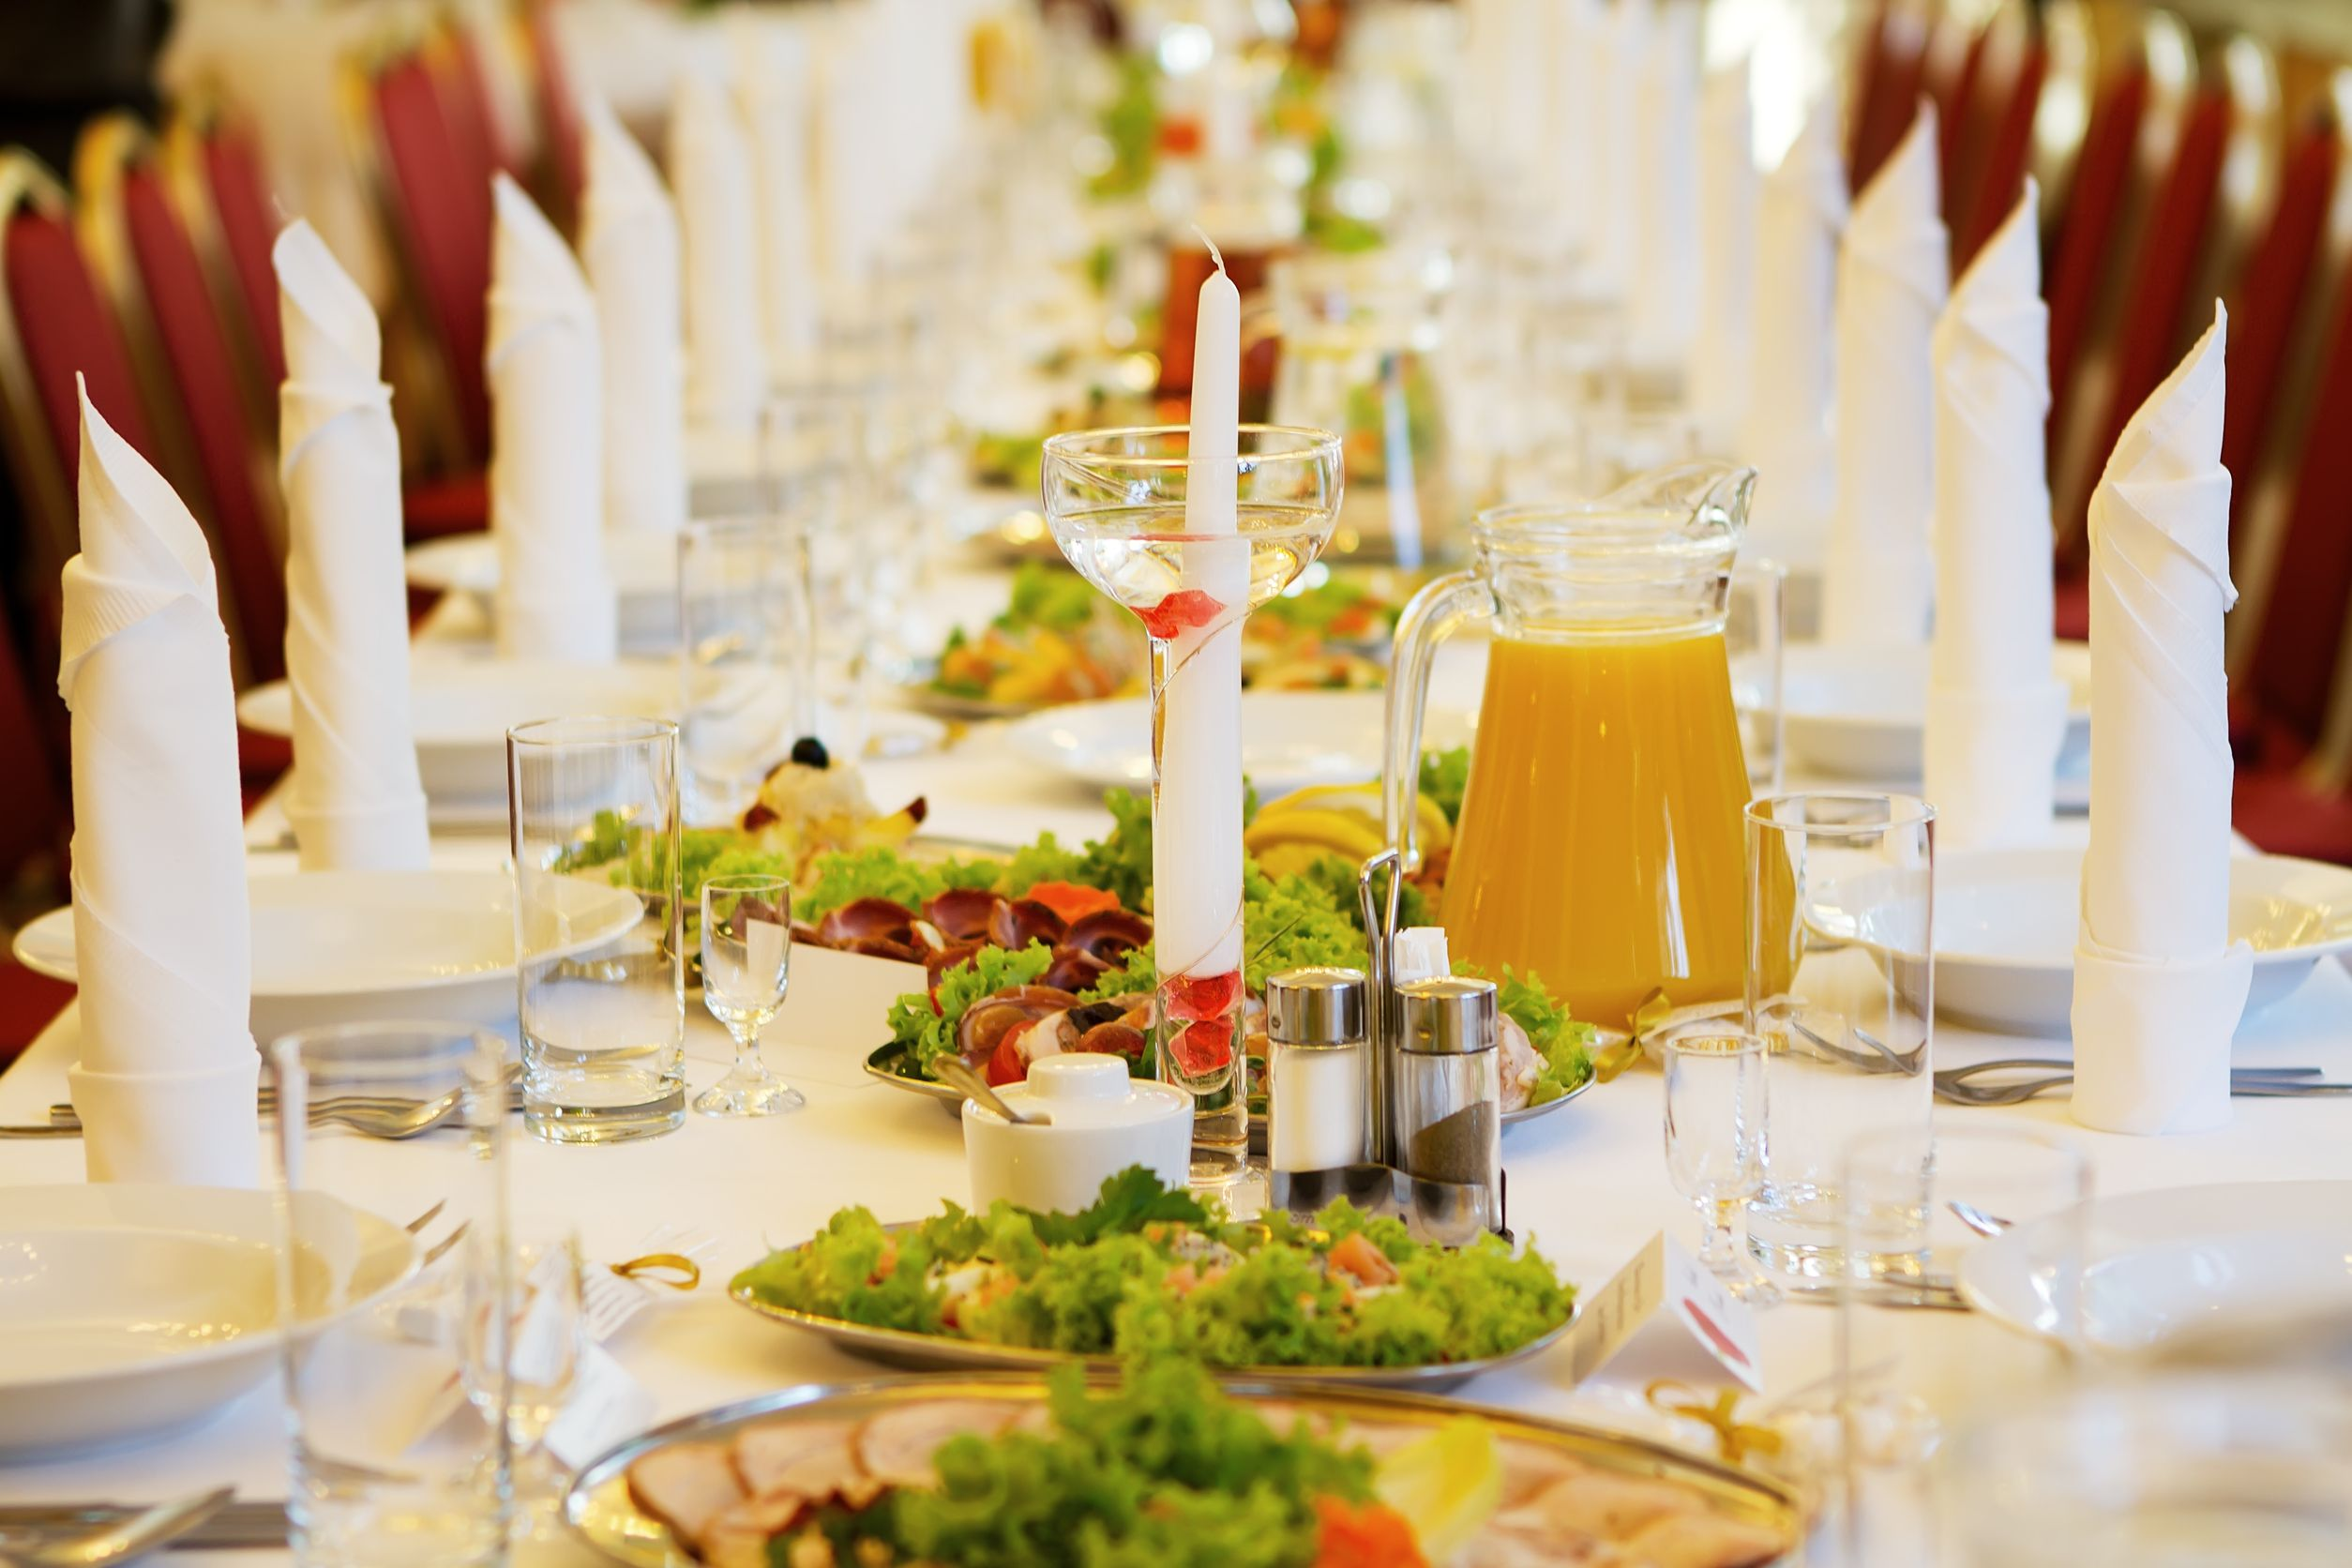 Catering Your Special Event In Style